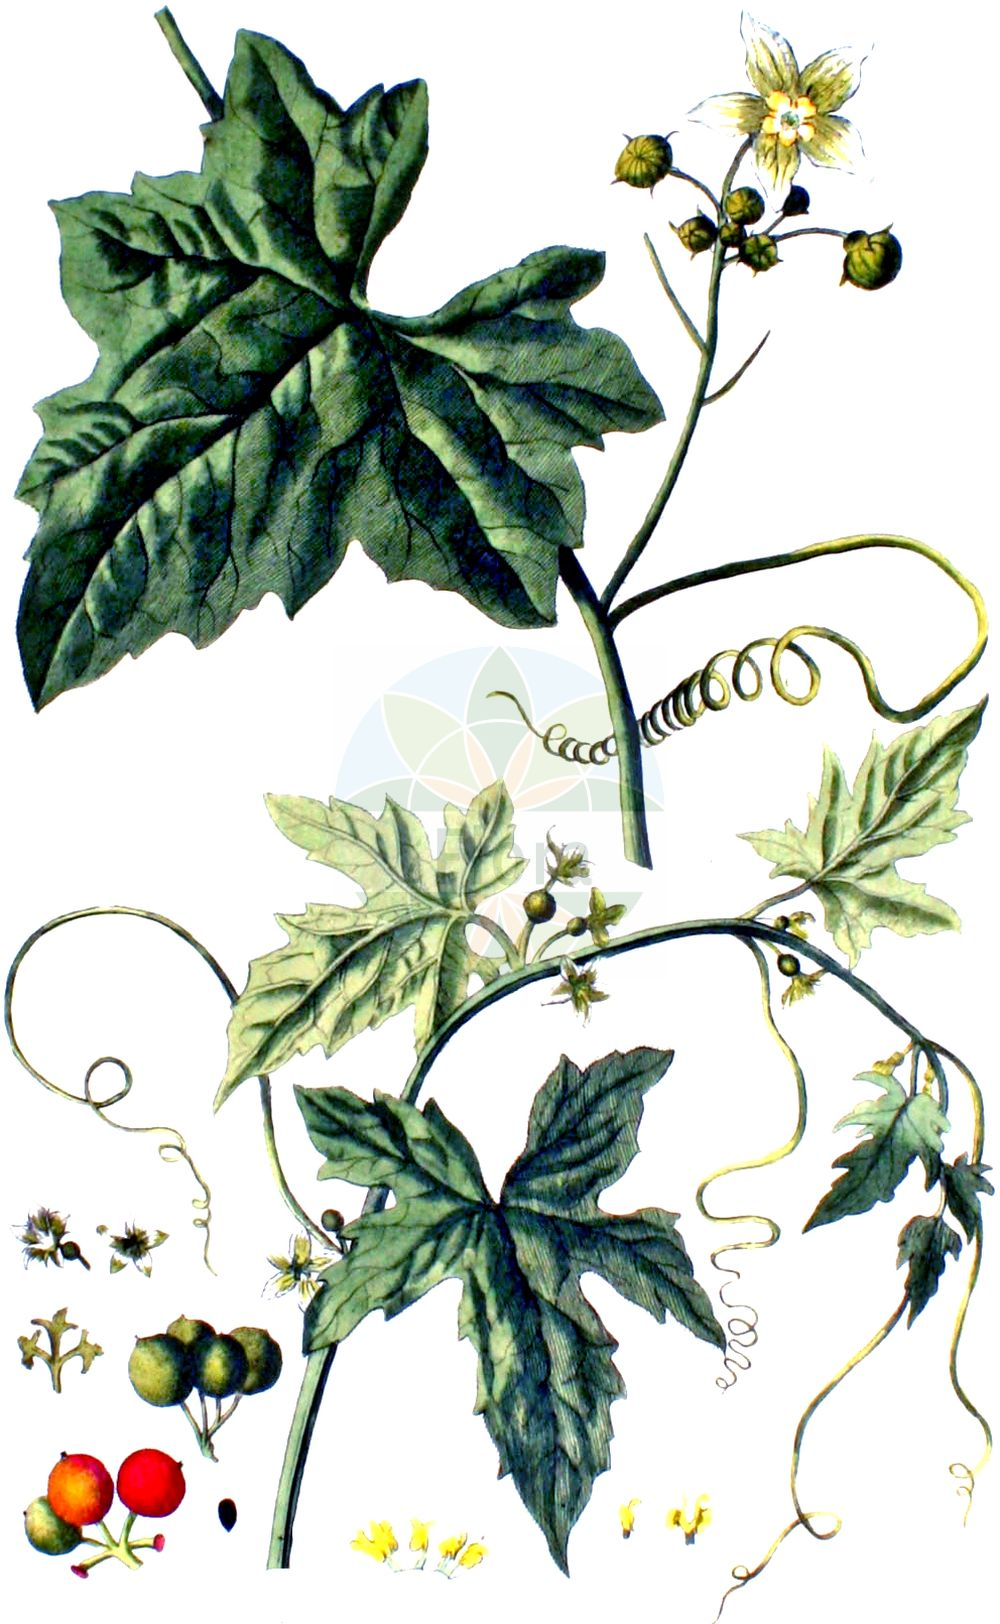 Historische Abbildung von Bryonia dioica (Rotfruechtige Zaunruebe - White Bryony). Das Bild zeigt Blatt, Bluete, Frucht und Same. ---- Historical Drawing of Bryonia dioica (Rotfruechtige Zaunruebe - White Bryony).The image is showing leaf, flower, fruit and seed.(Bryonia dioica,Rotfruechtige Zaunruebe,White Bryony,Bryonia digyna,Bryonia dioica,Bryonia sicula,Rotfruechtige Zaunruebe,Rotbeerige Zaunruebe,Rote Zaunruebe,White Bryony,Common Bryony,Cretan Bryony,Red-berried Bryony,Red-berry Bryony,Red Bryony,Bryonia,Zaunruebe,Bryony,Cucurbitaceae,Kuerbisgewaechse,Cucurbit family,Blatt,Bluete,Frucht,Same,leaf,flower,fruit,seed,Kops (1800-1934))